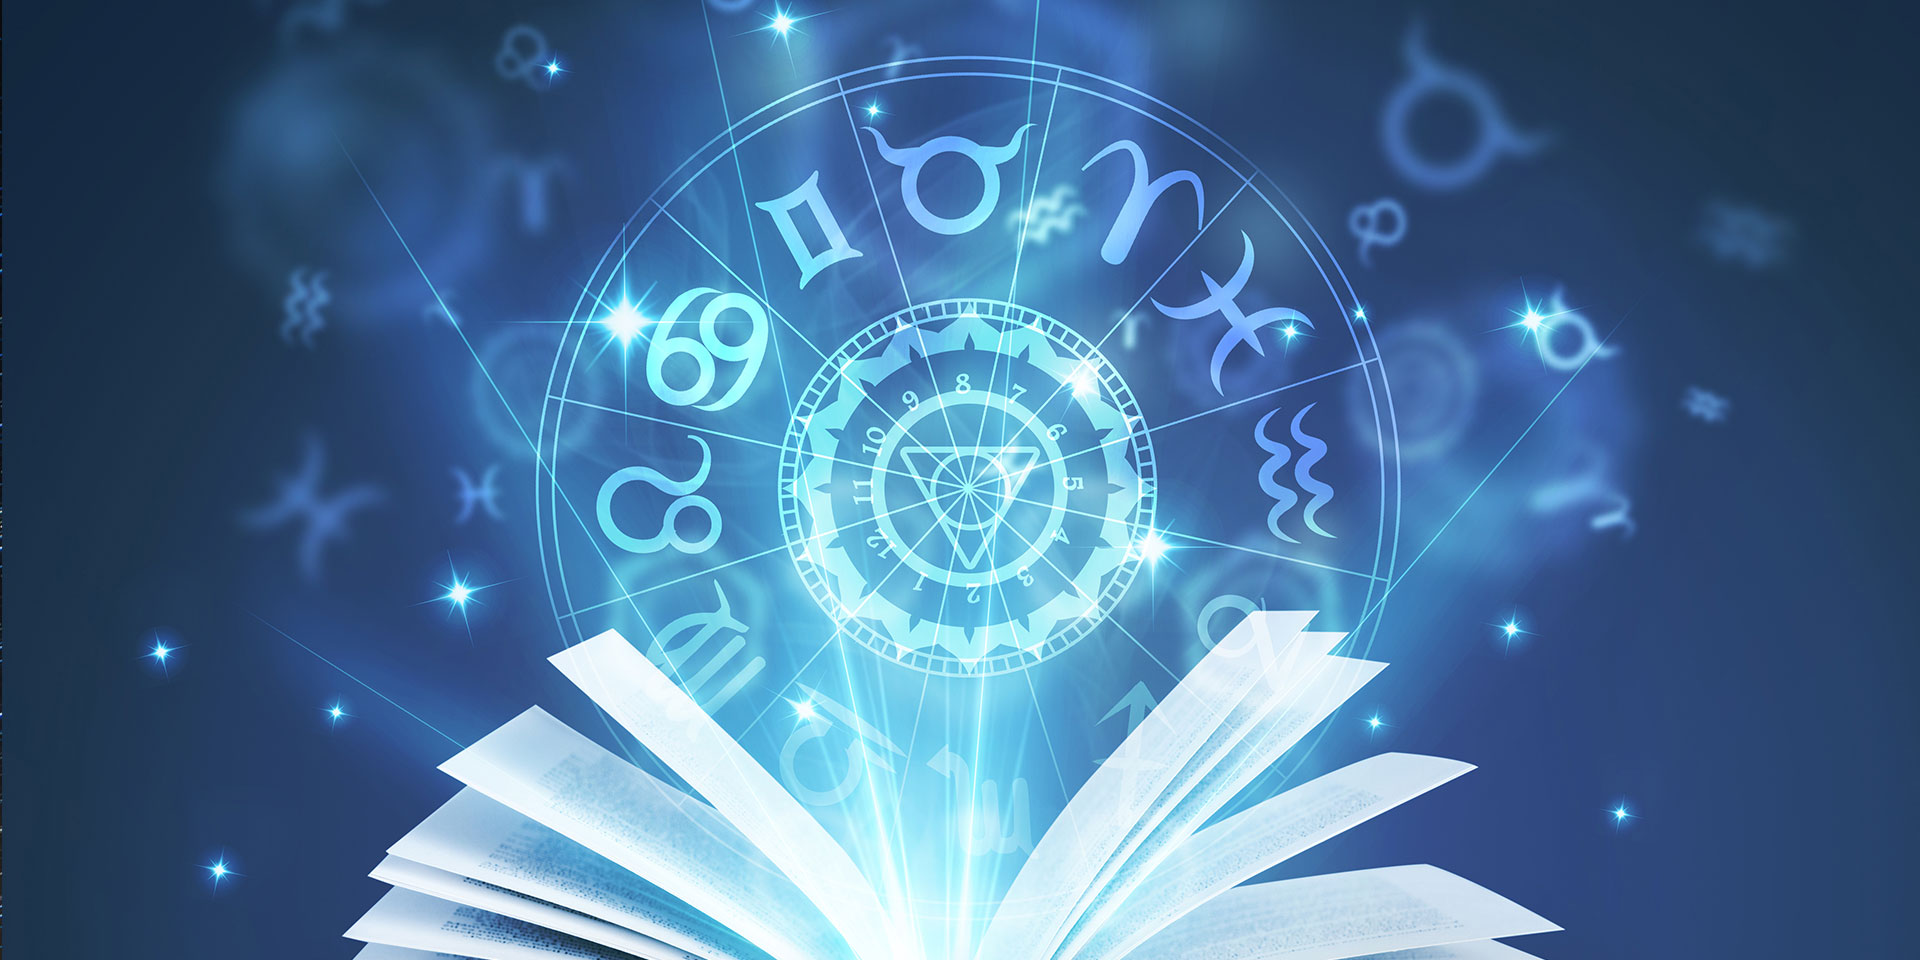 Hellenistic astrology the study of fate and fortune used